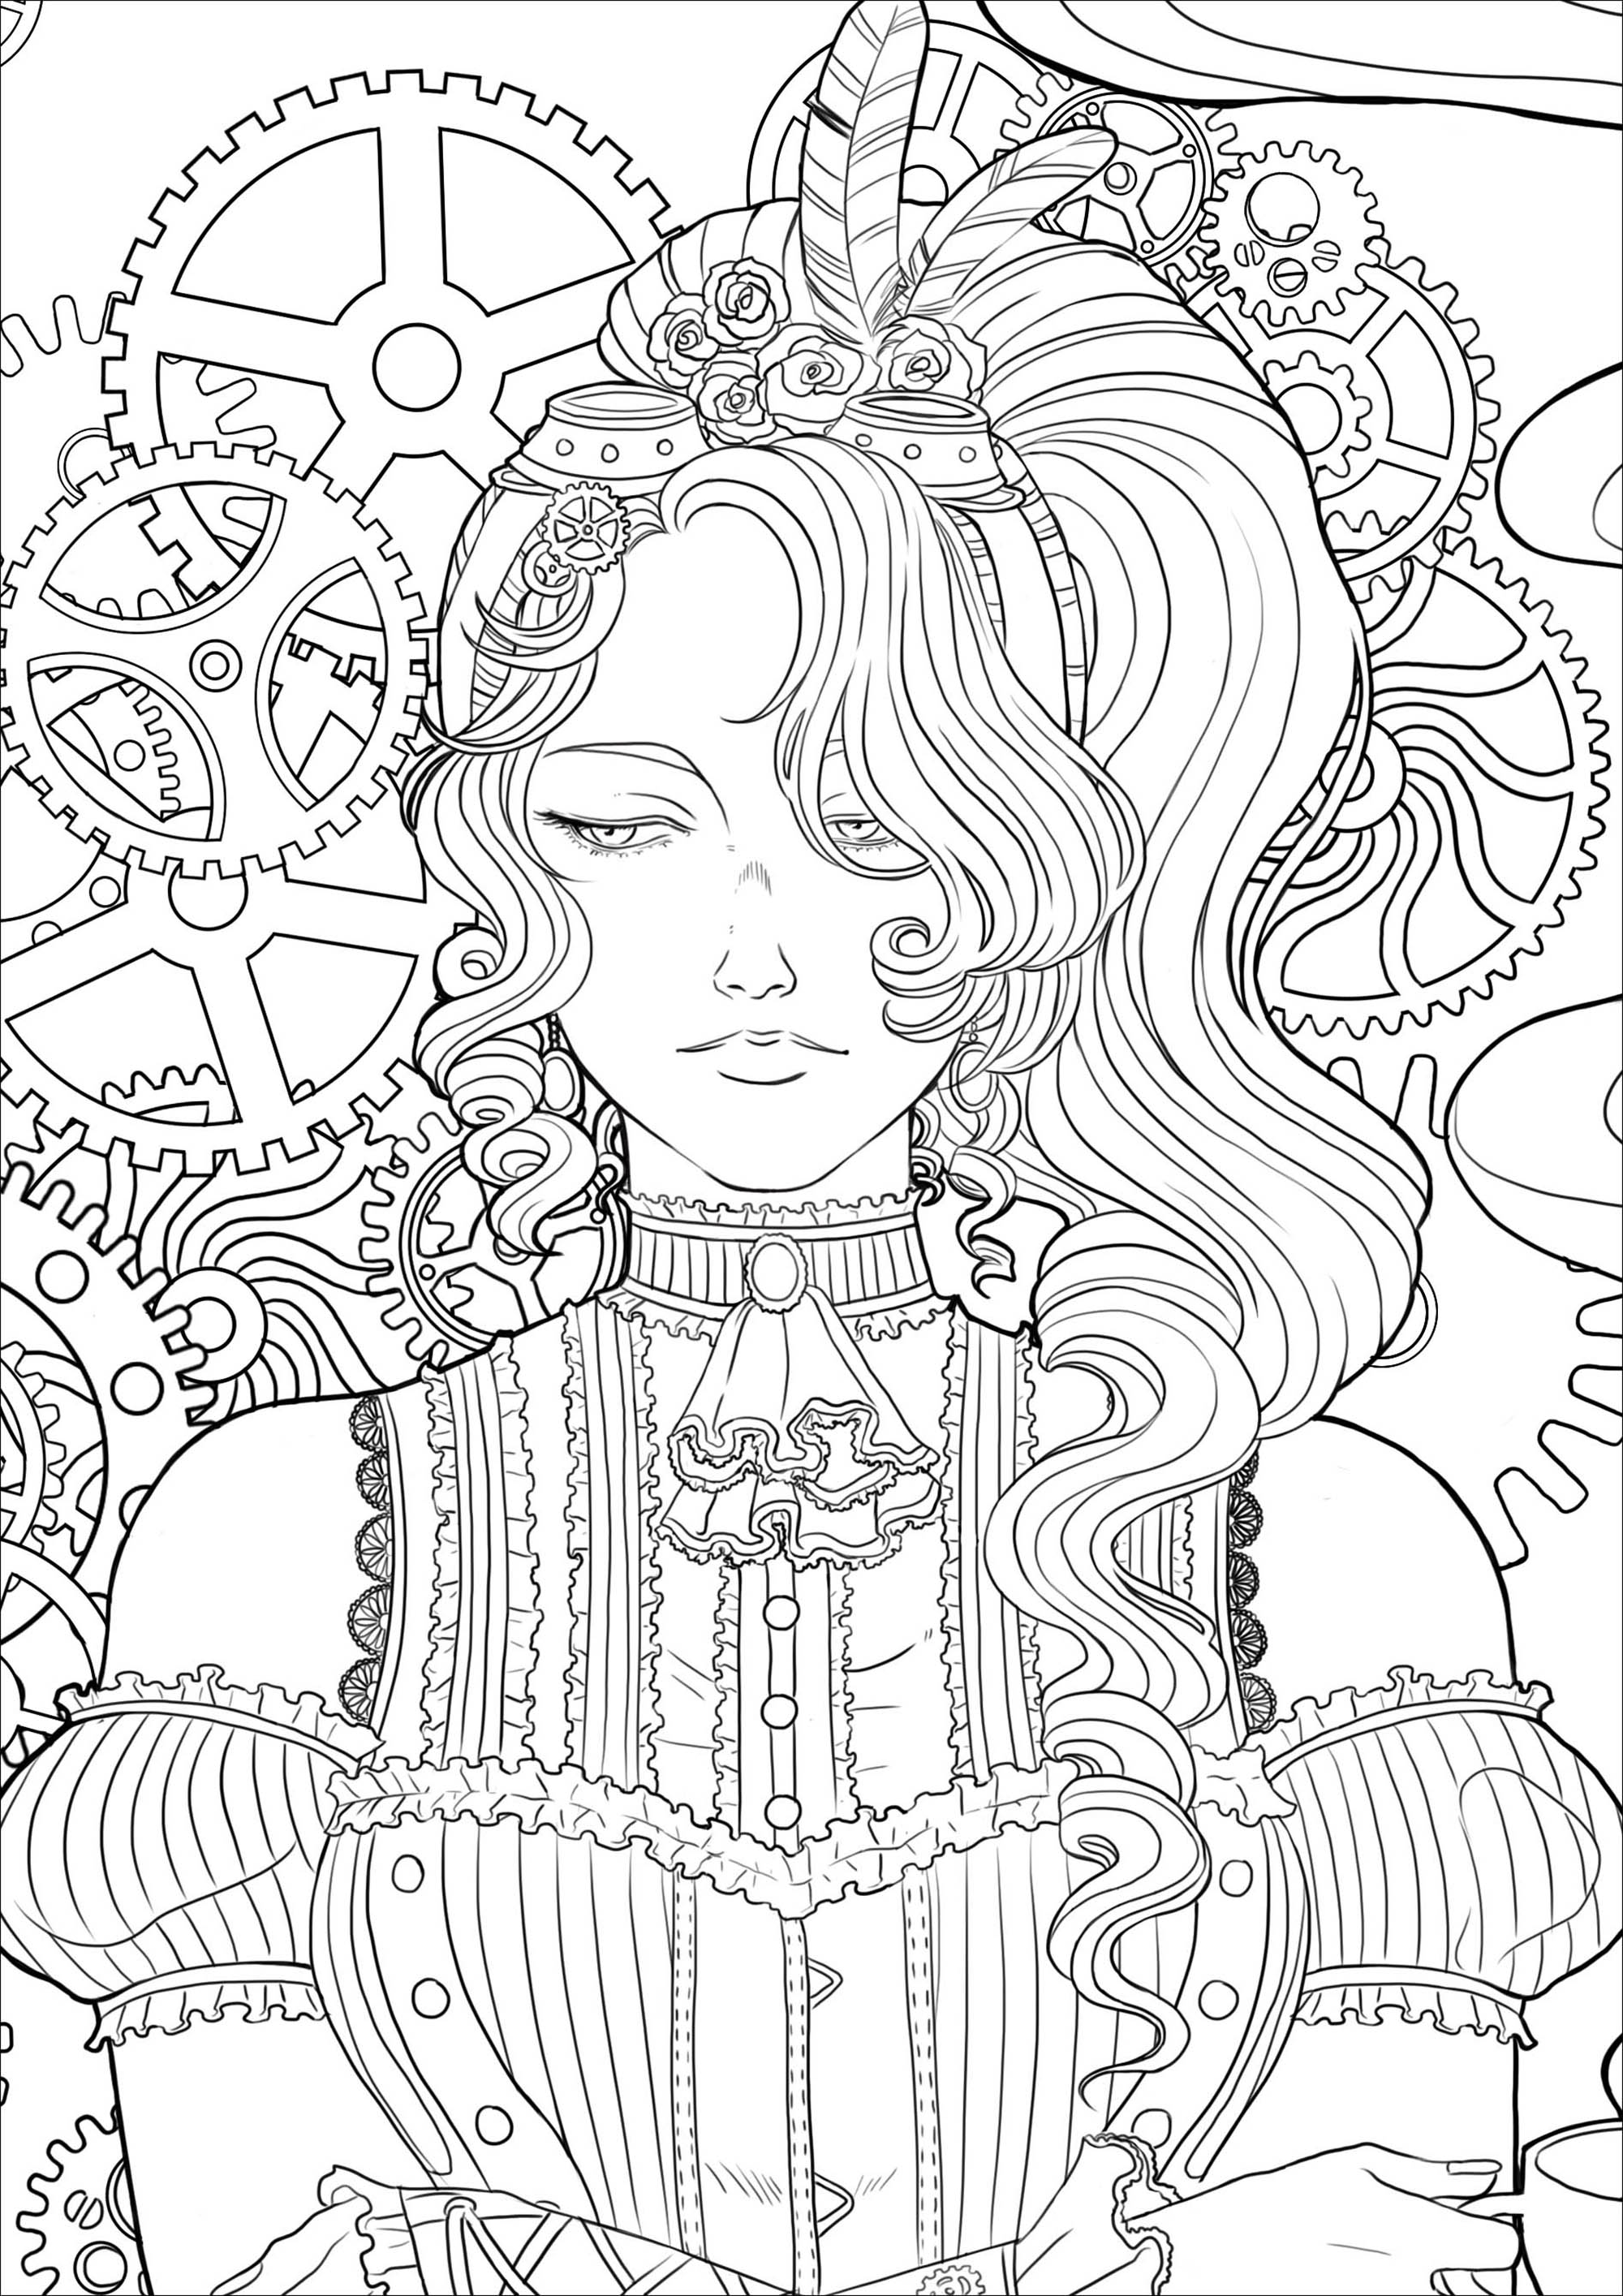 group of girls coloring pages she wanted to empower young girls so she made this of pages coloring group girls